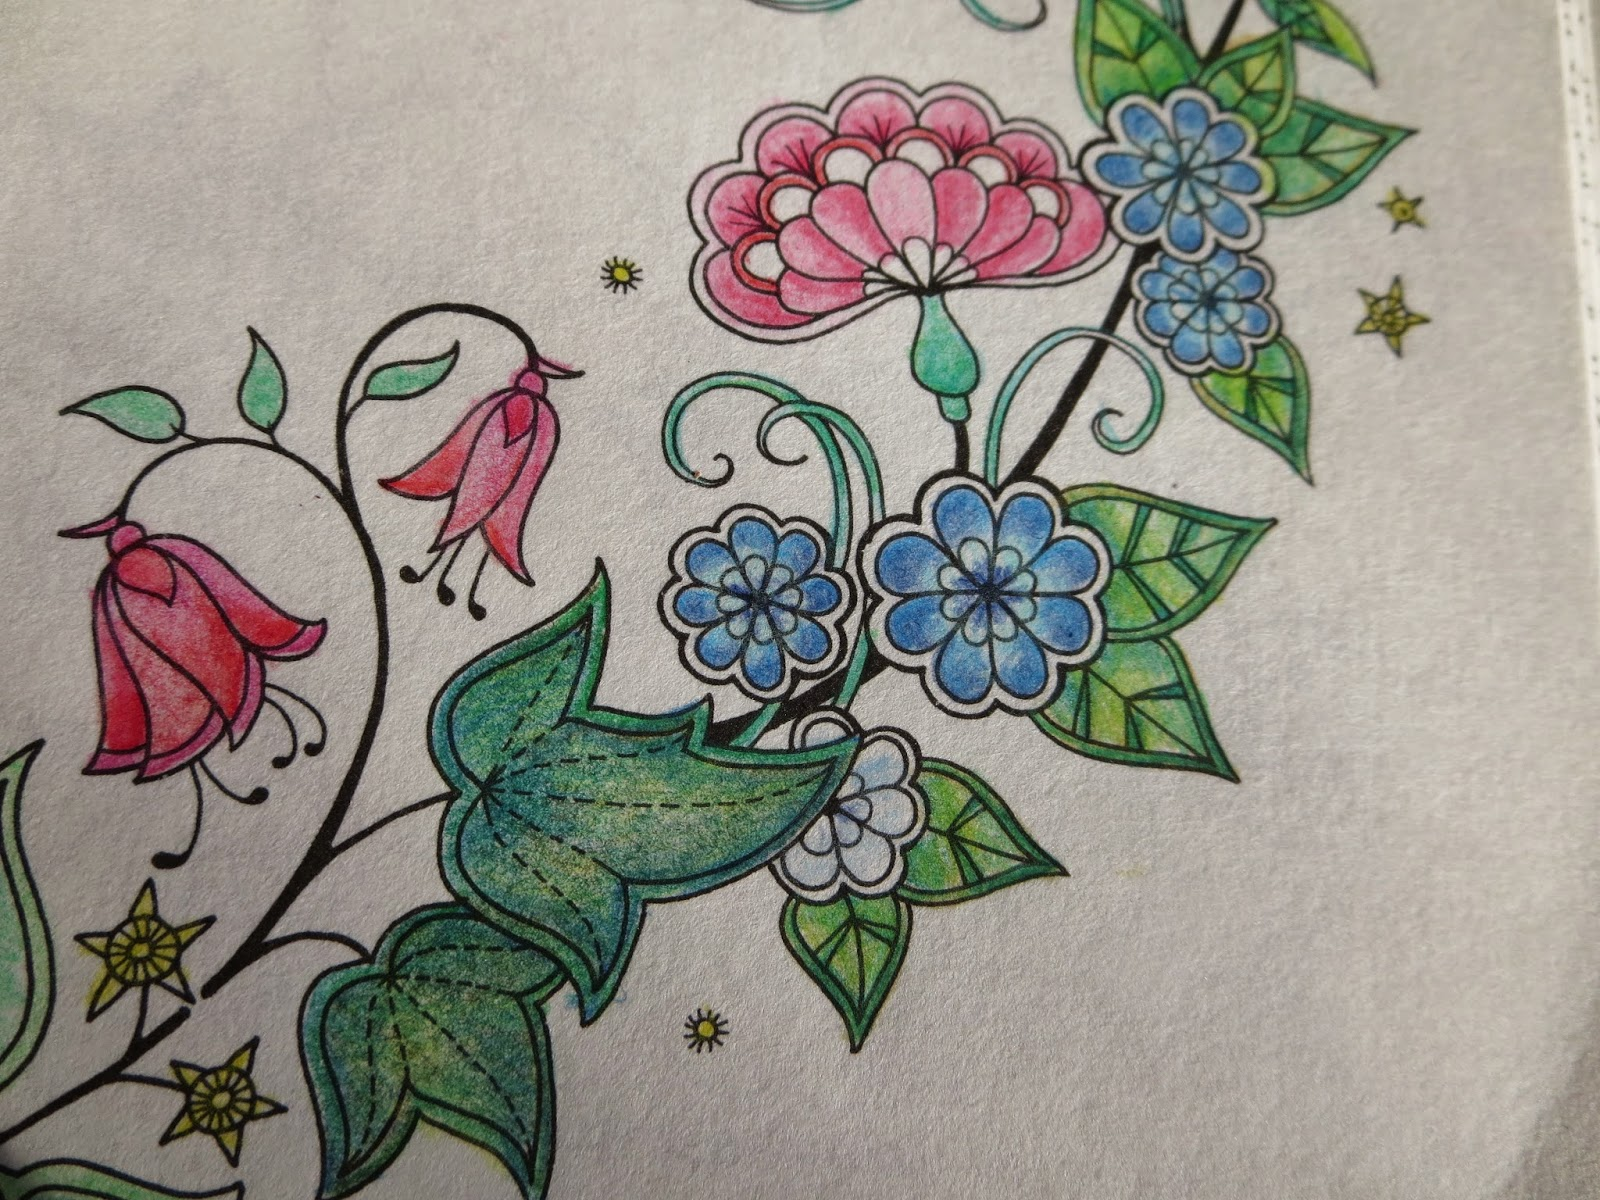 im using my bruynzeel design coloured pencils for this drawing i make sure my pencils are sharpened all the time because they colour so much better and - My Secret Garden Coloring Book